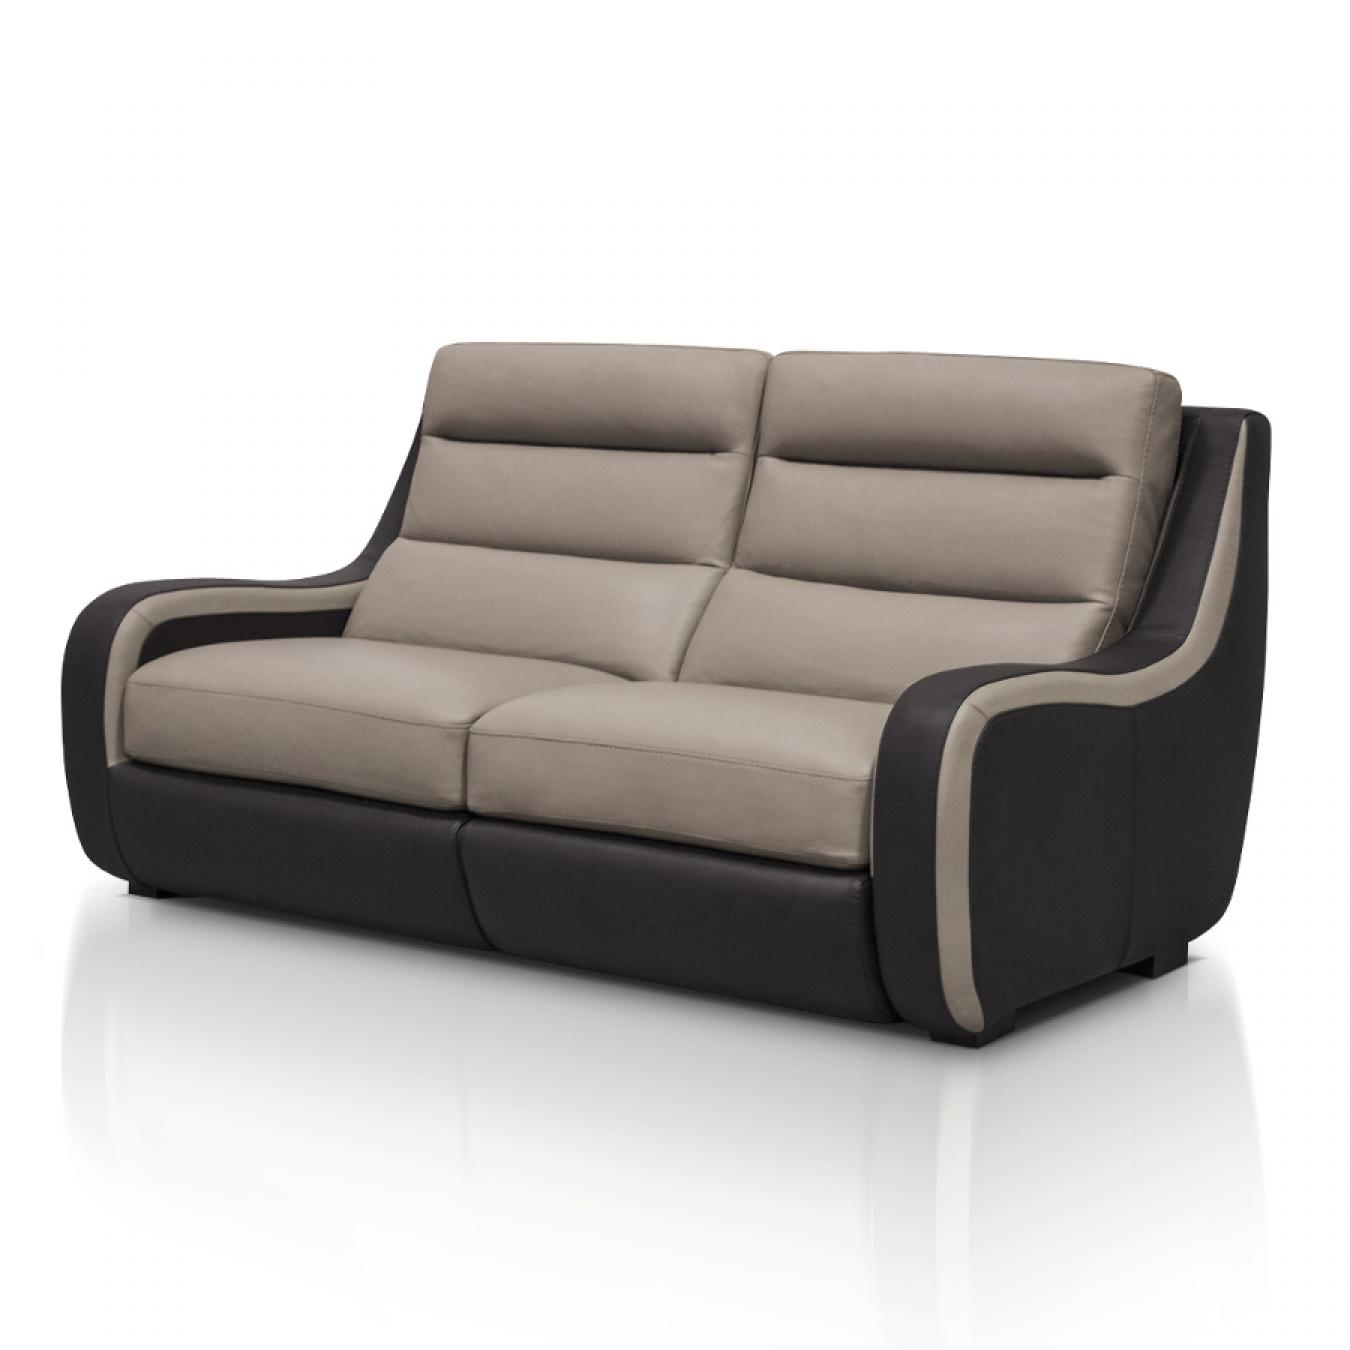 Canape relax places - Canape 2 places relax cuir ...